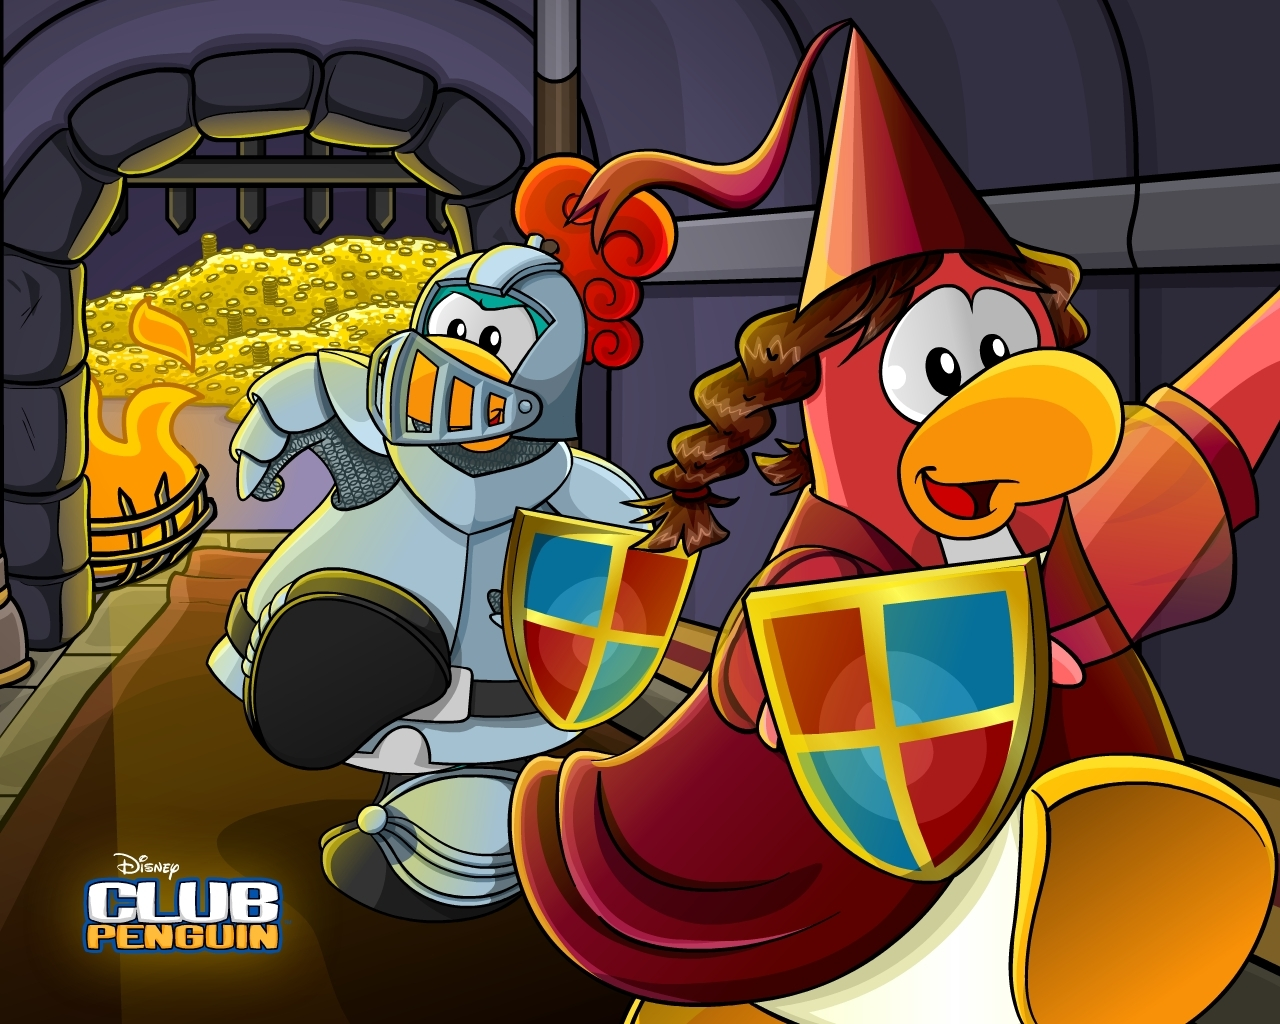 Show me more club penguin epf colouring pages - Club Penguin Has Released A New Medieval Wallpaper Check It Out